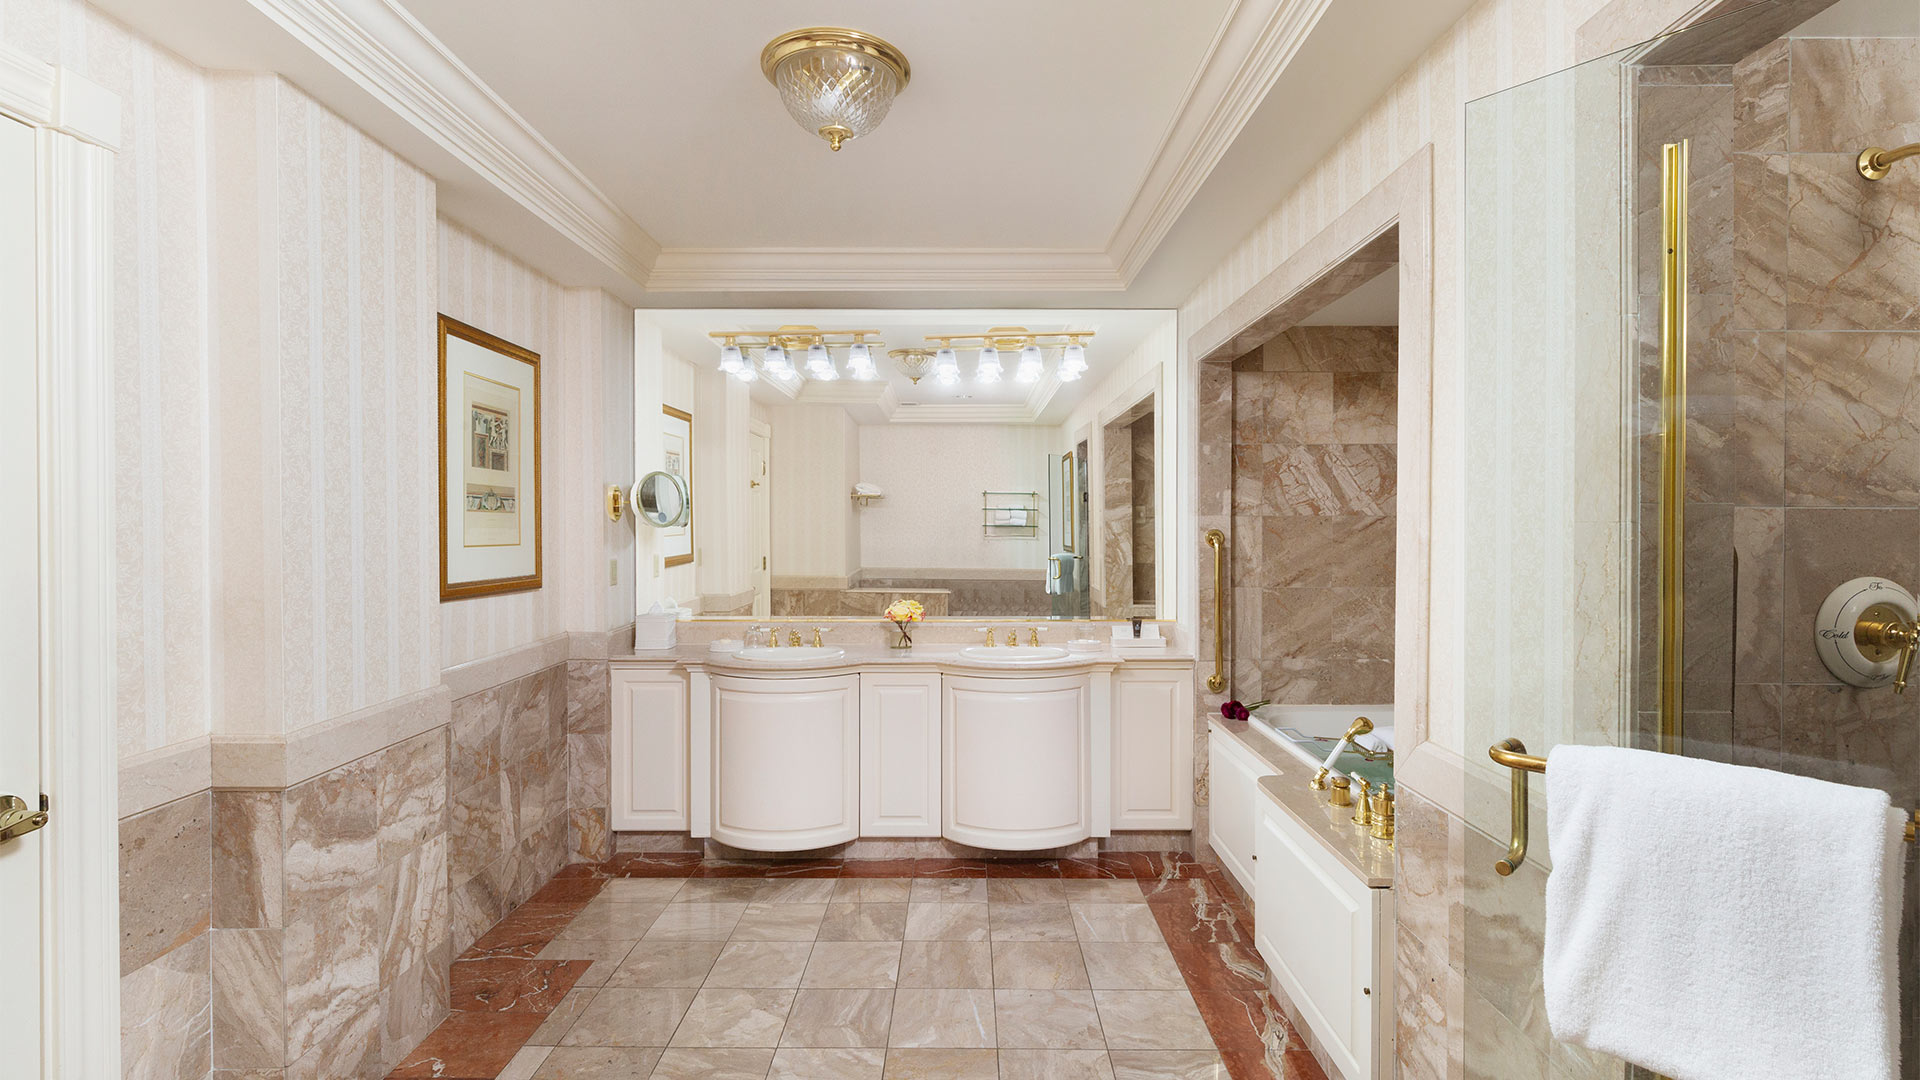 interior shot of a bathroom. the colors are a neutral beige. There is an elegant double sink with a large mirror and a shower and bath combination to the right of the sinks.